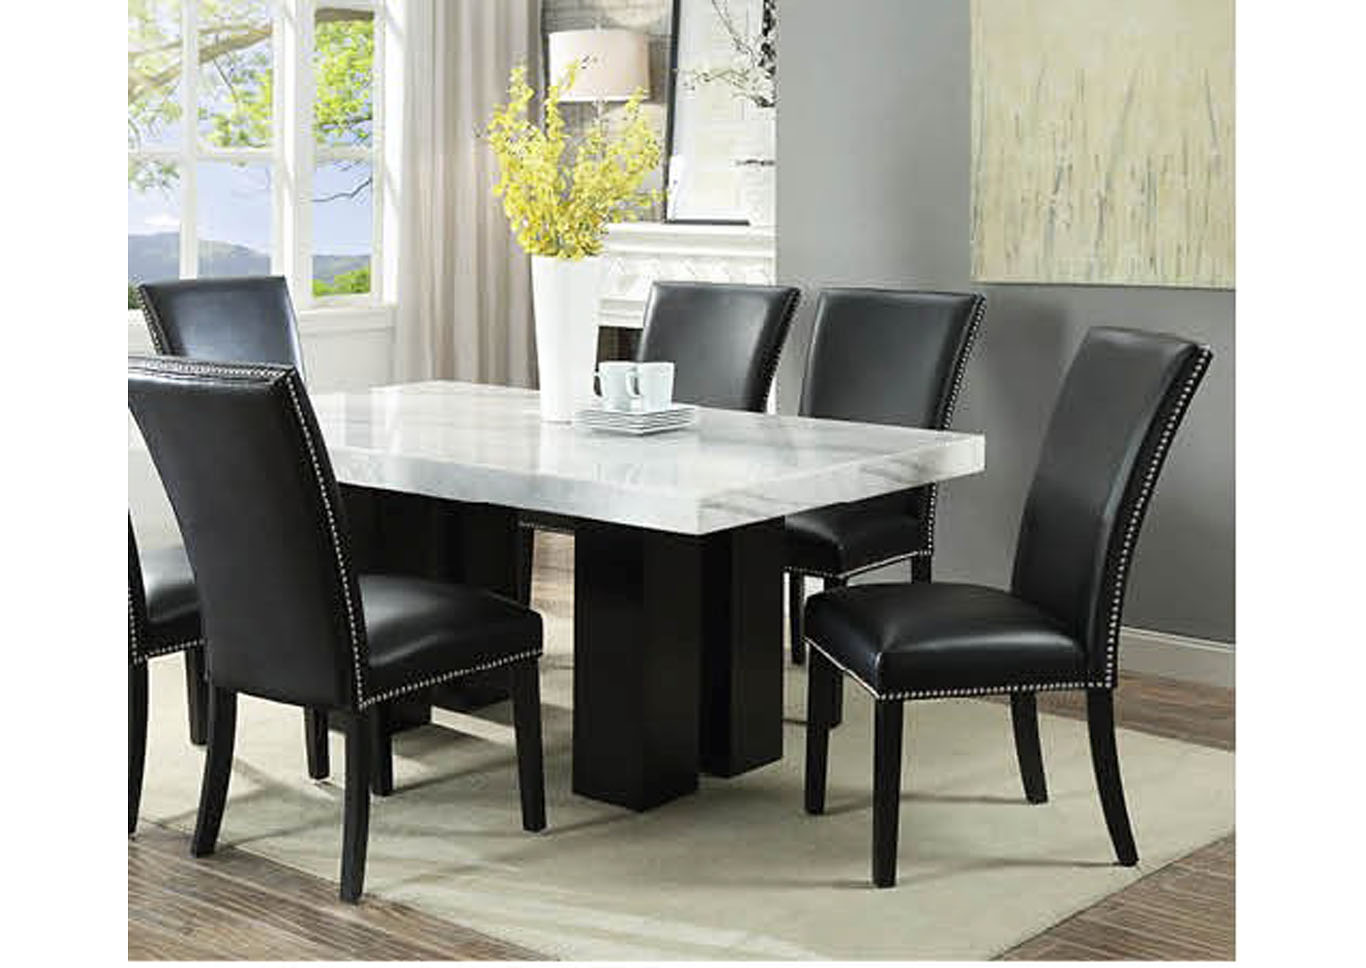 Cam White Marble Dining Room Set with 6 Black Chairs,Instore